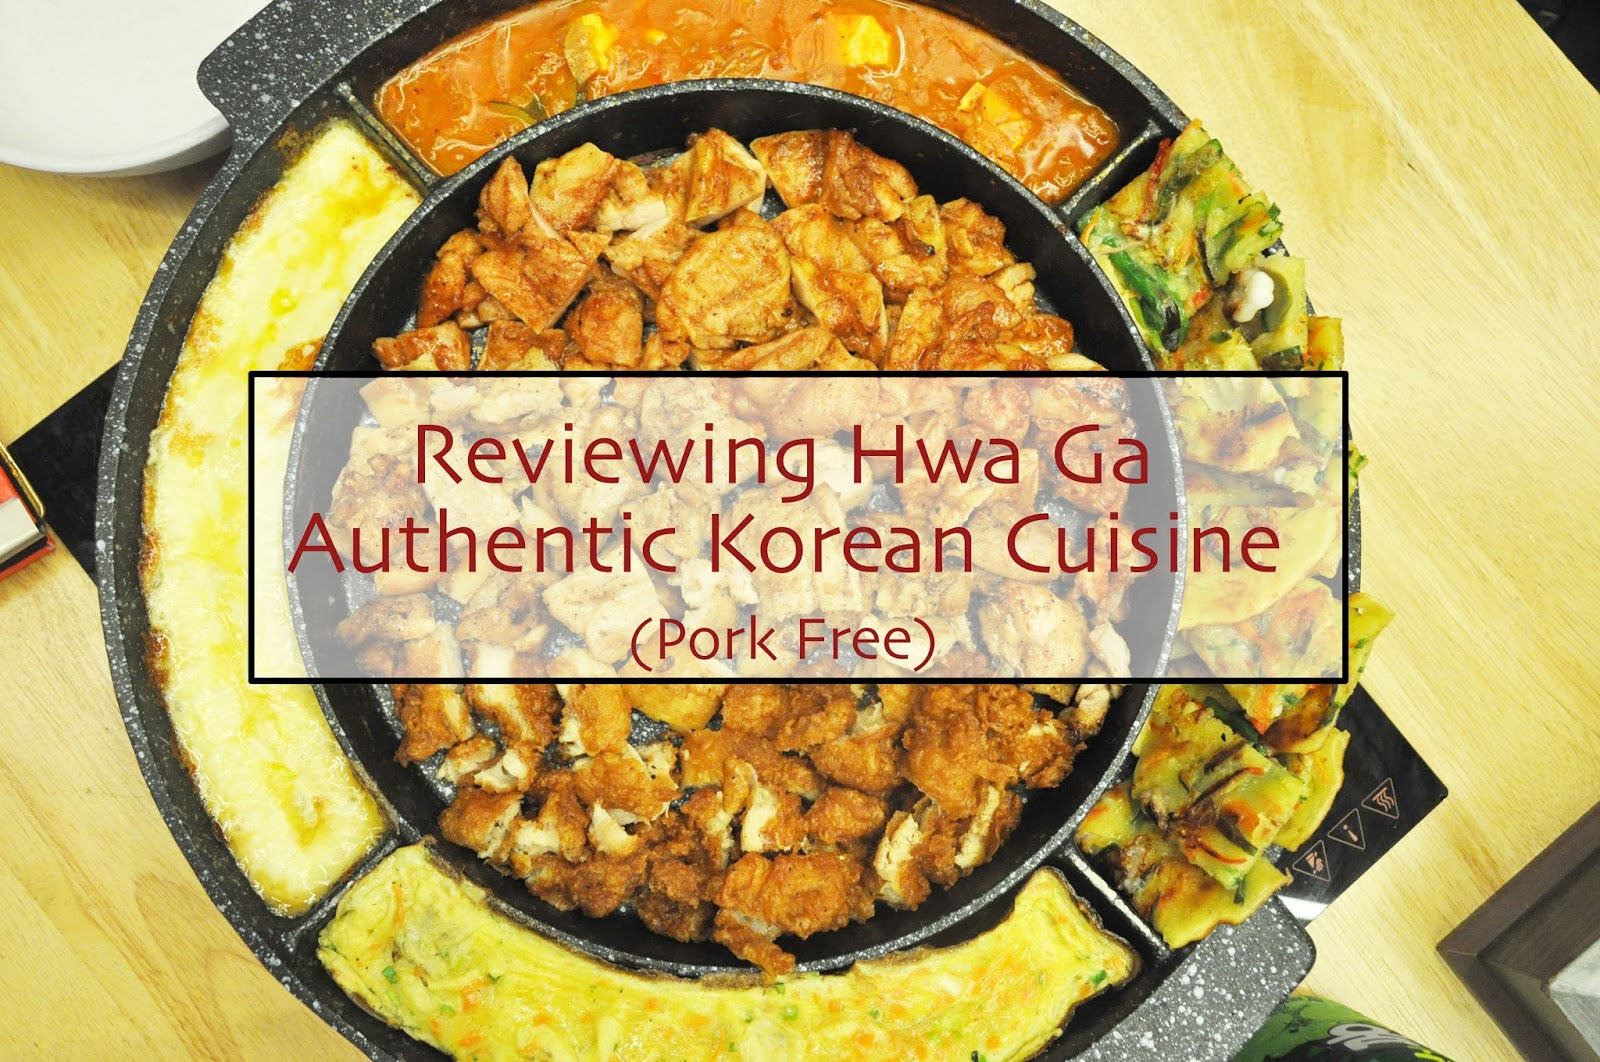 Sara wanderlust review hwa ga pork free authentic for Authentic korean cuisine